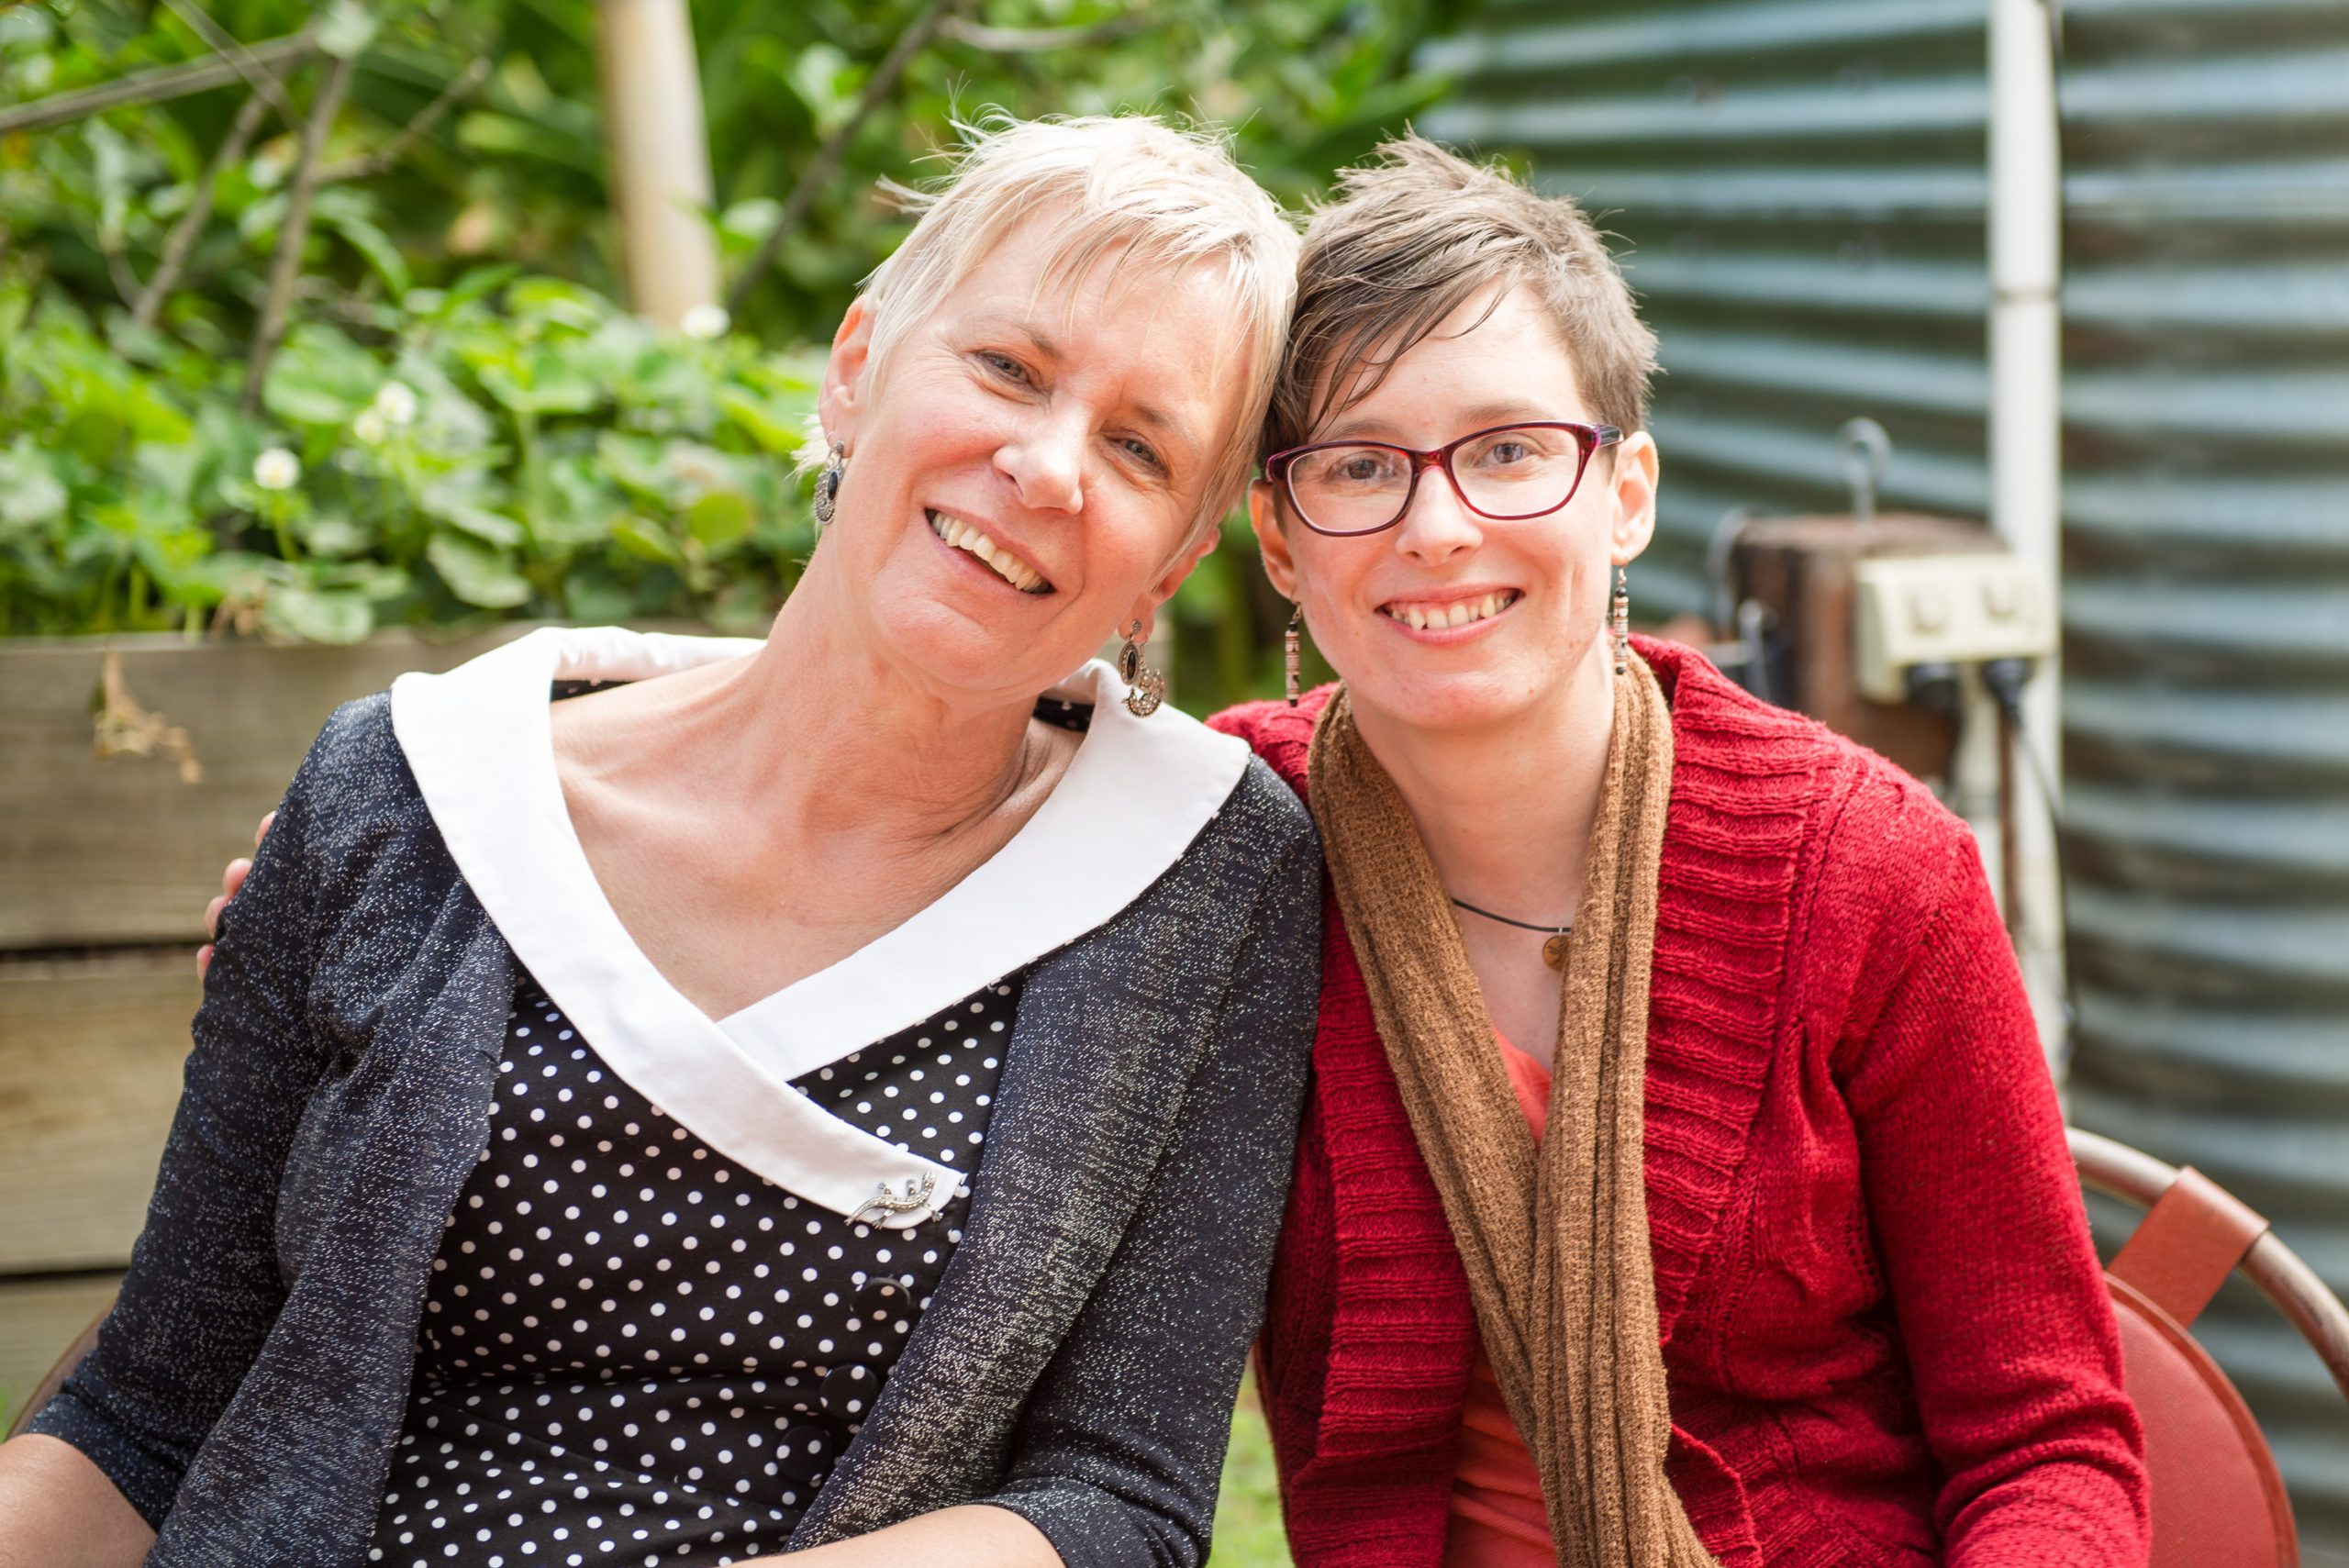 Read more about the article Re-storied and Restored: Queer Family Conundrums across the Generations by Manja Visschedijk and Gipsy Hosking